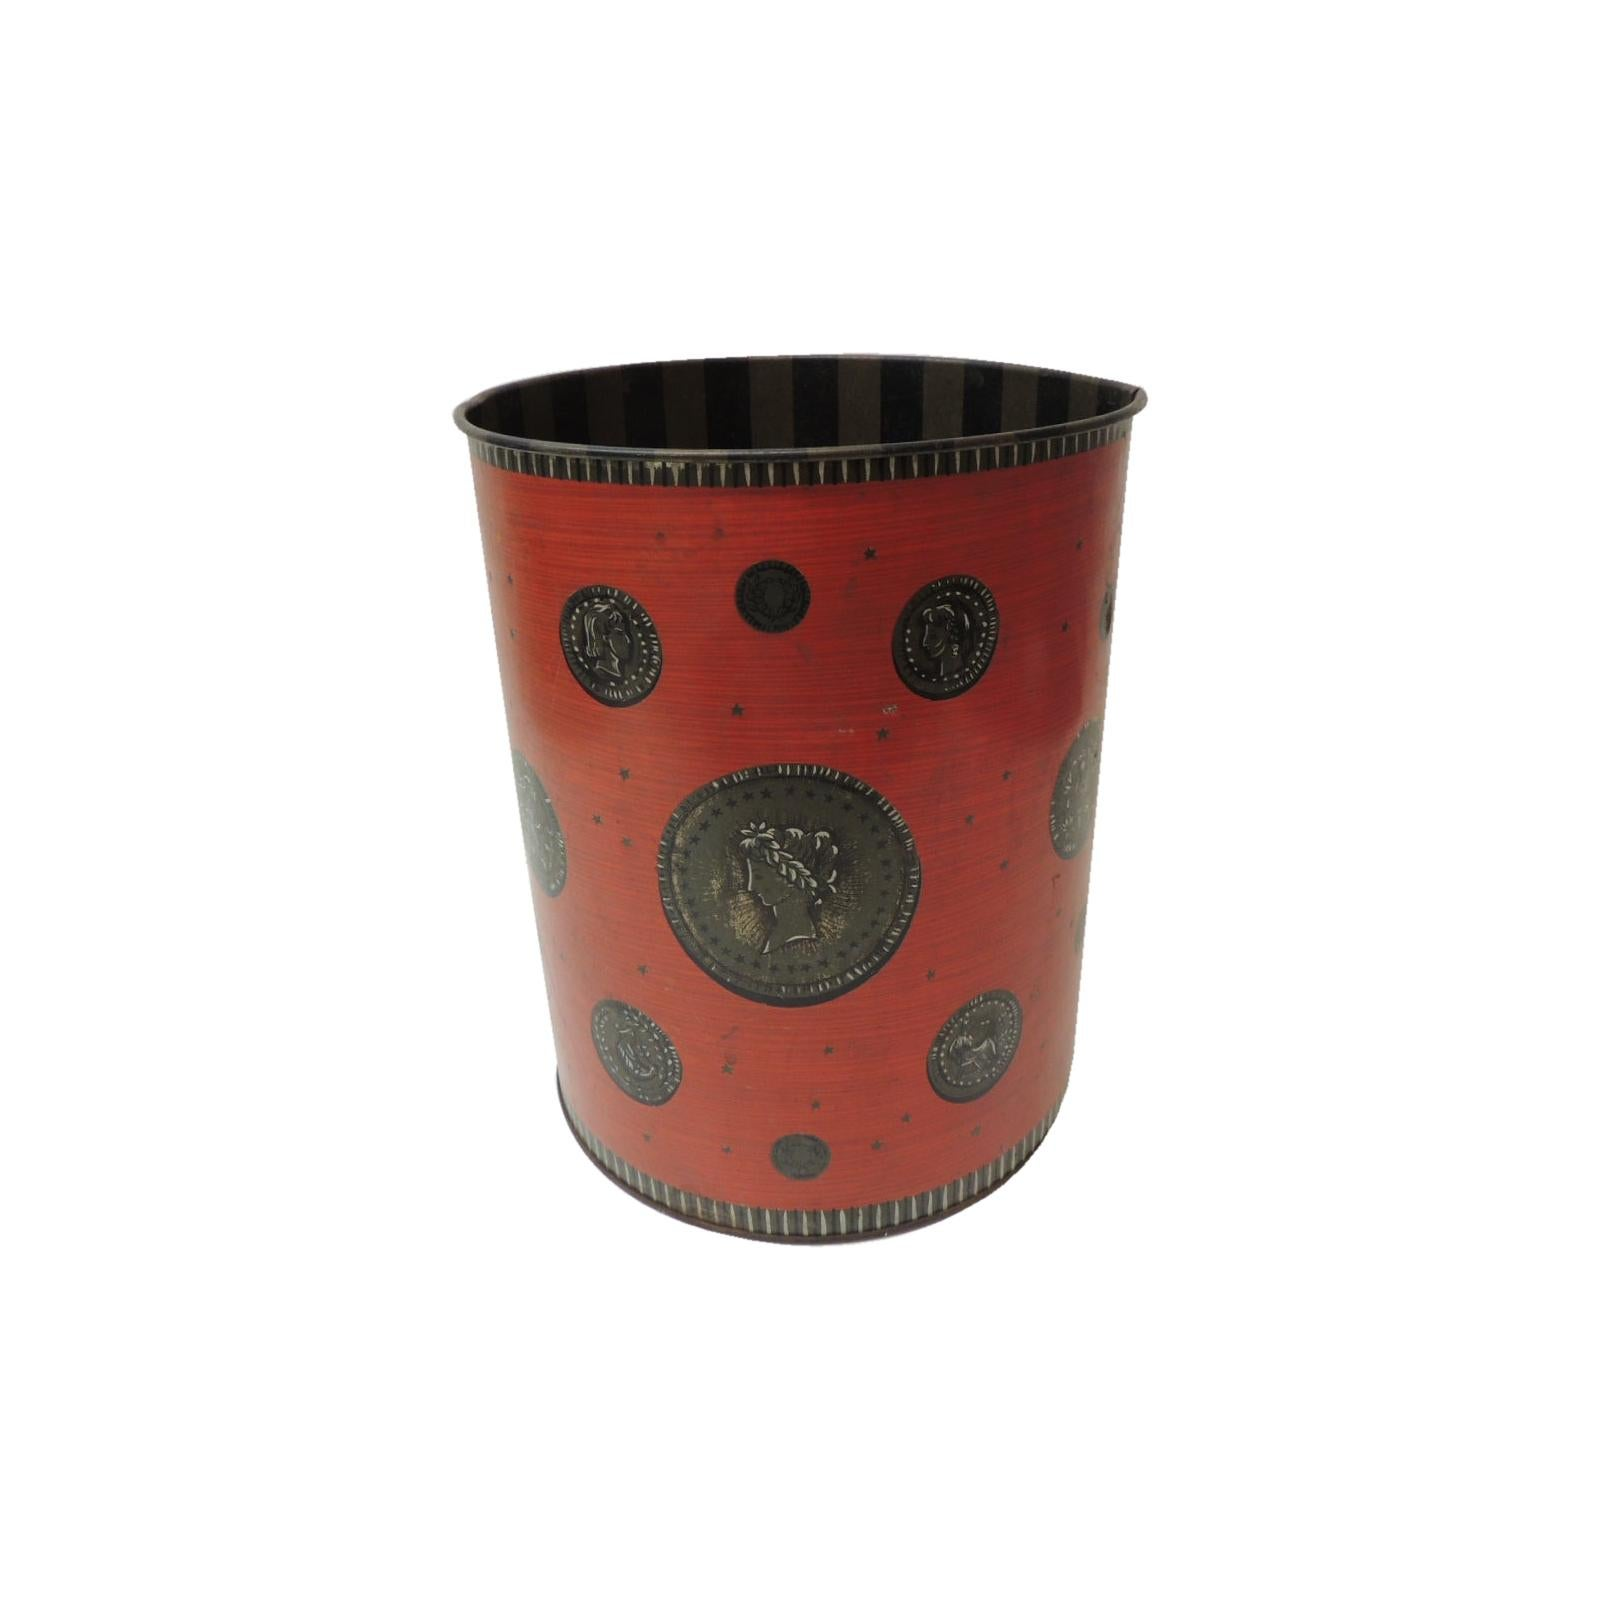 Vintage Red and Gray Cameo Style Wastebasket